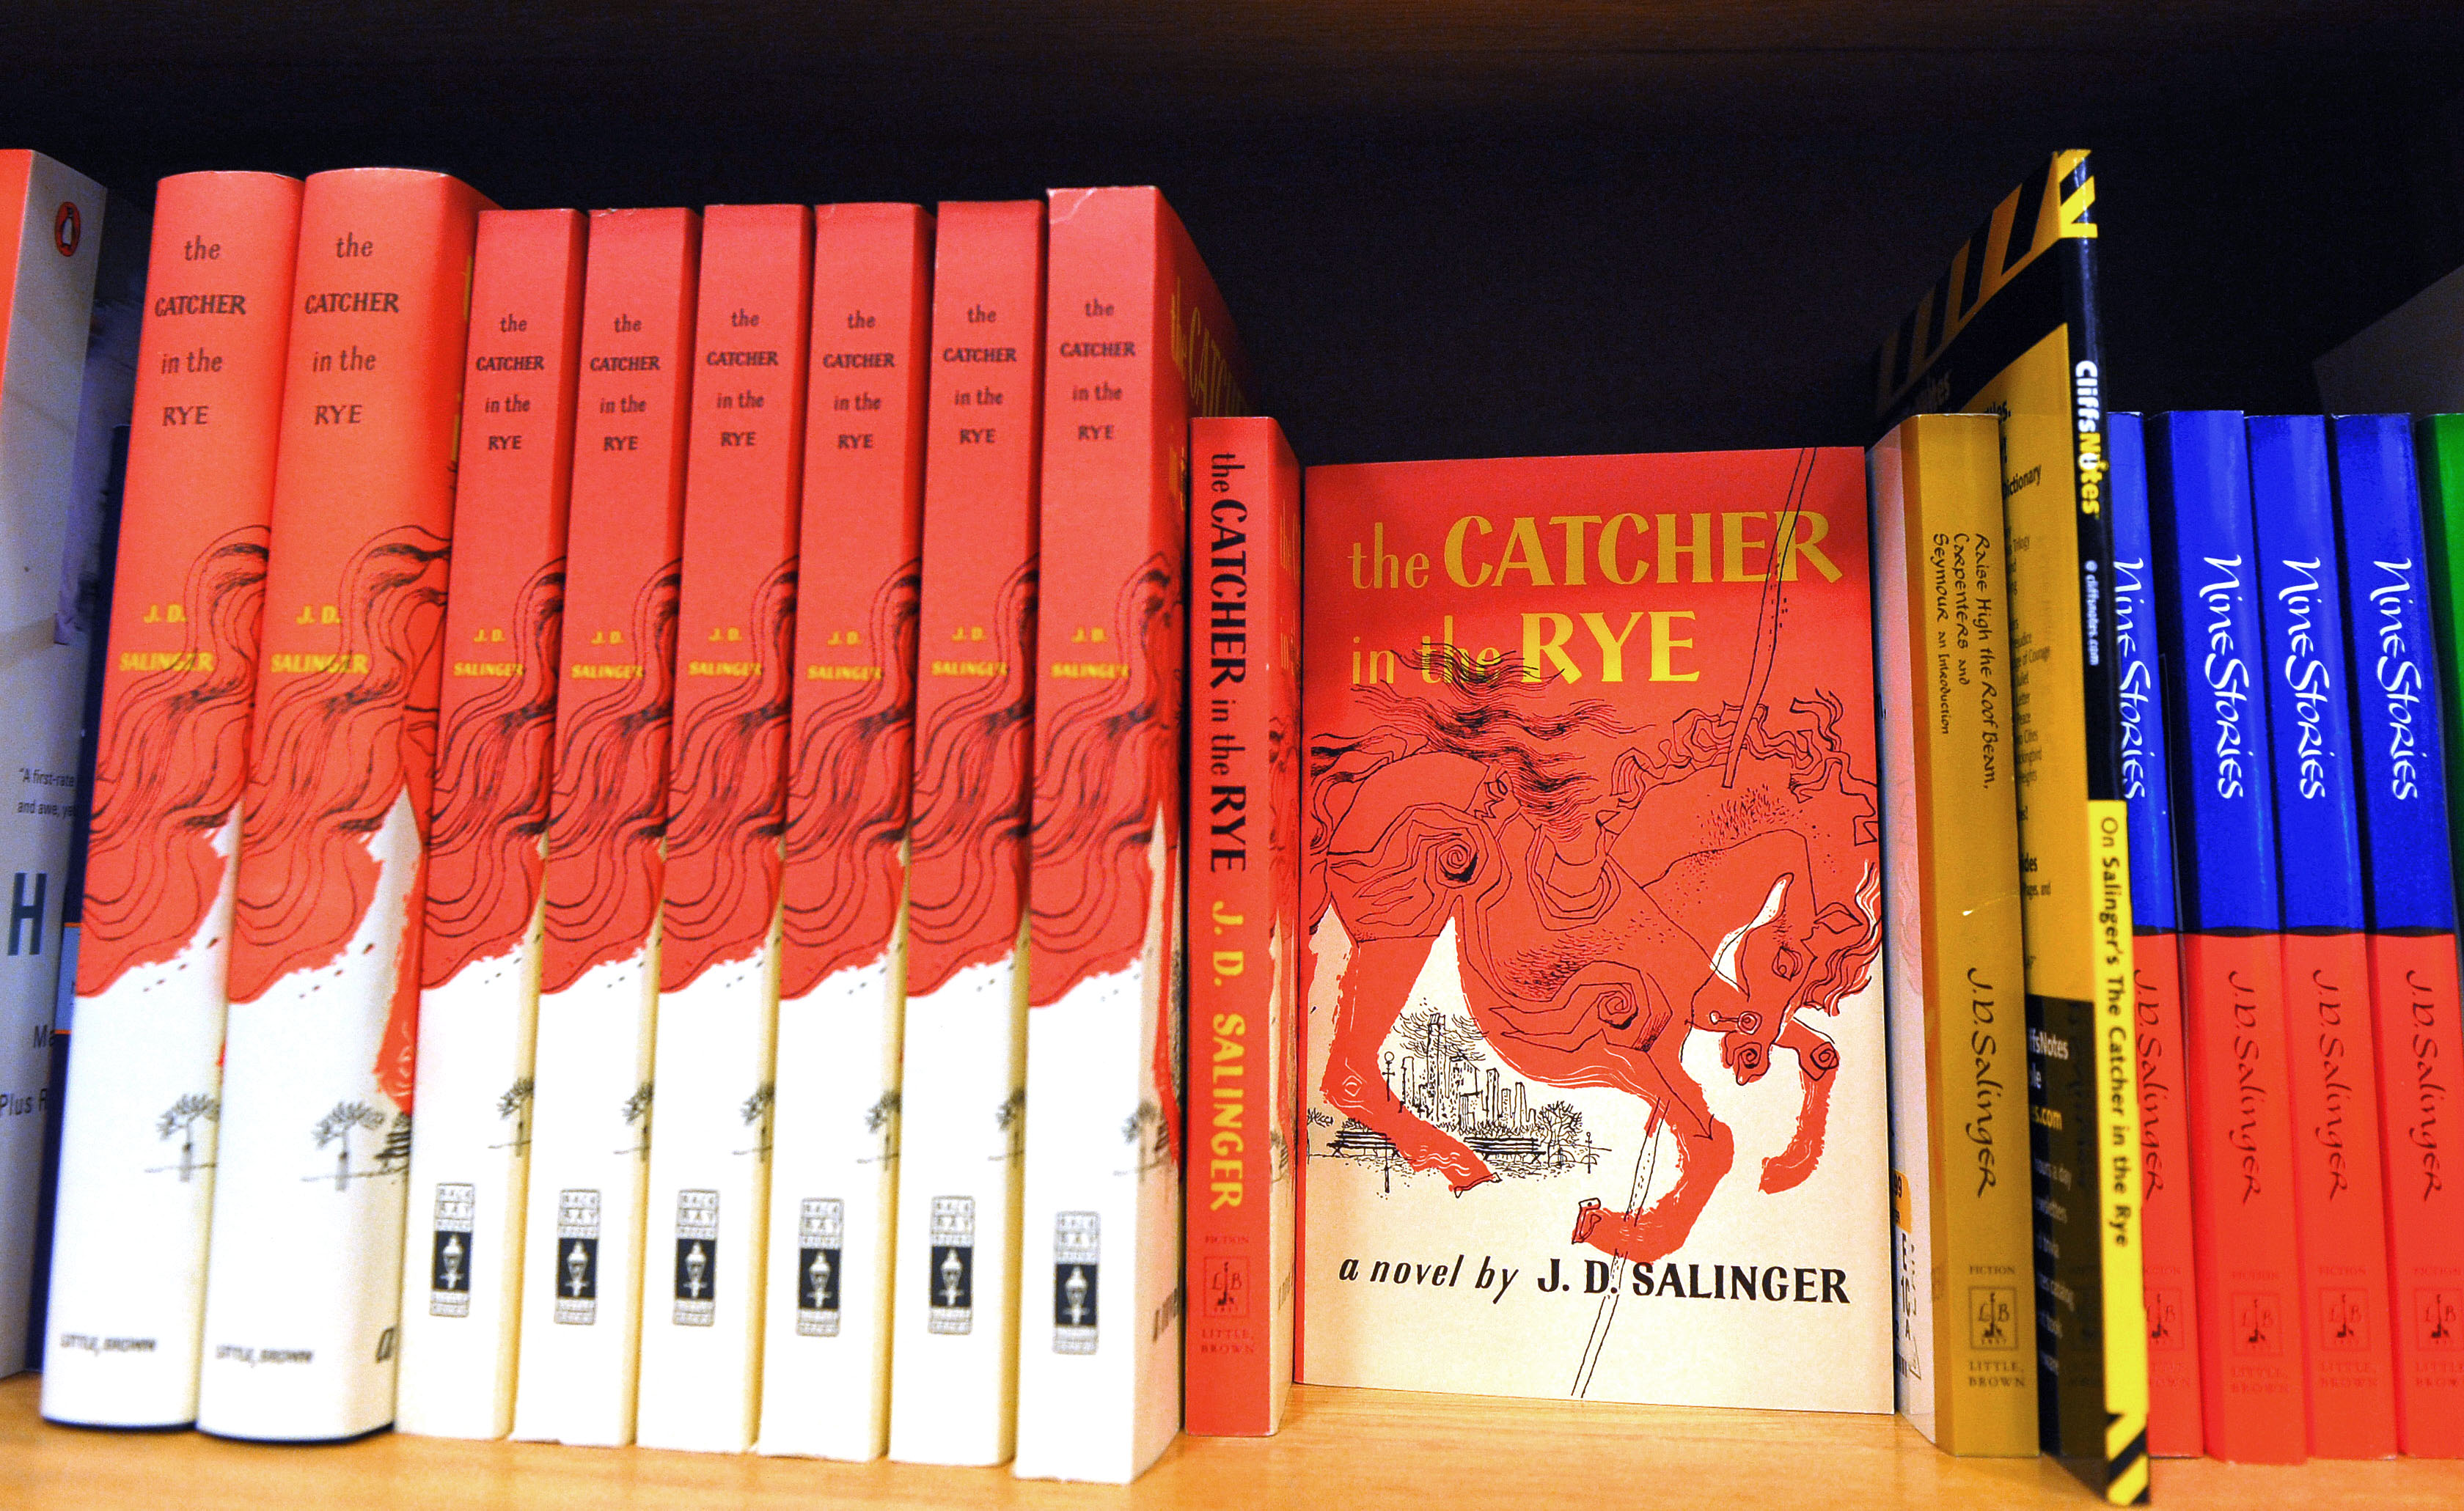 A January 28, 2010 photo shows a copies of  The Catcher in the Rye  by author J.D. Salinger at a bookstore in Washington, DC.